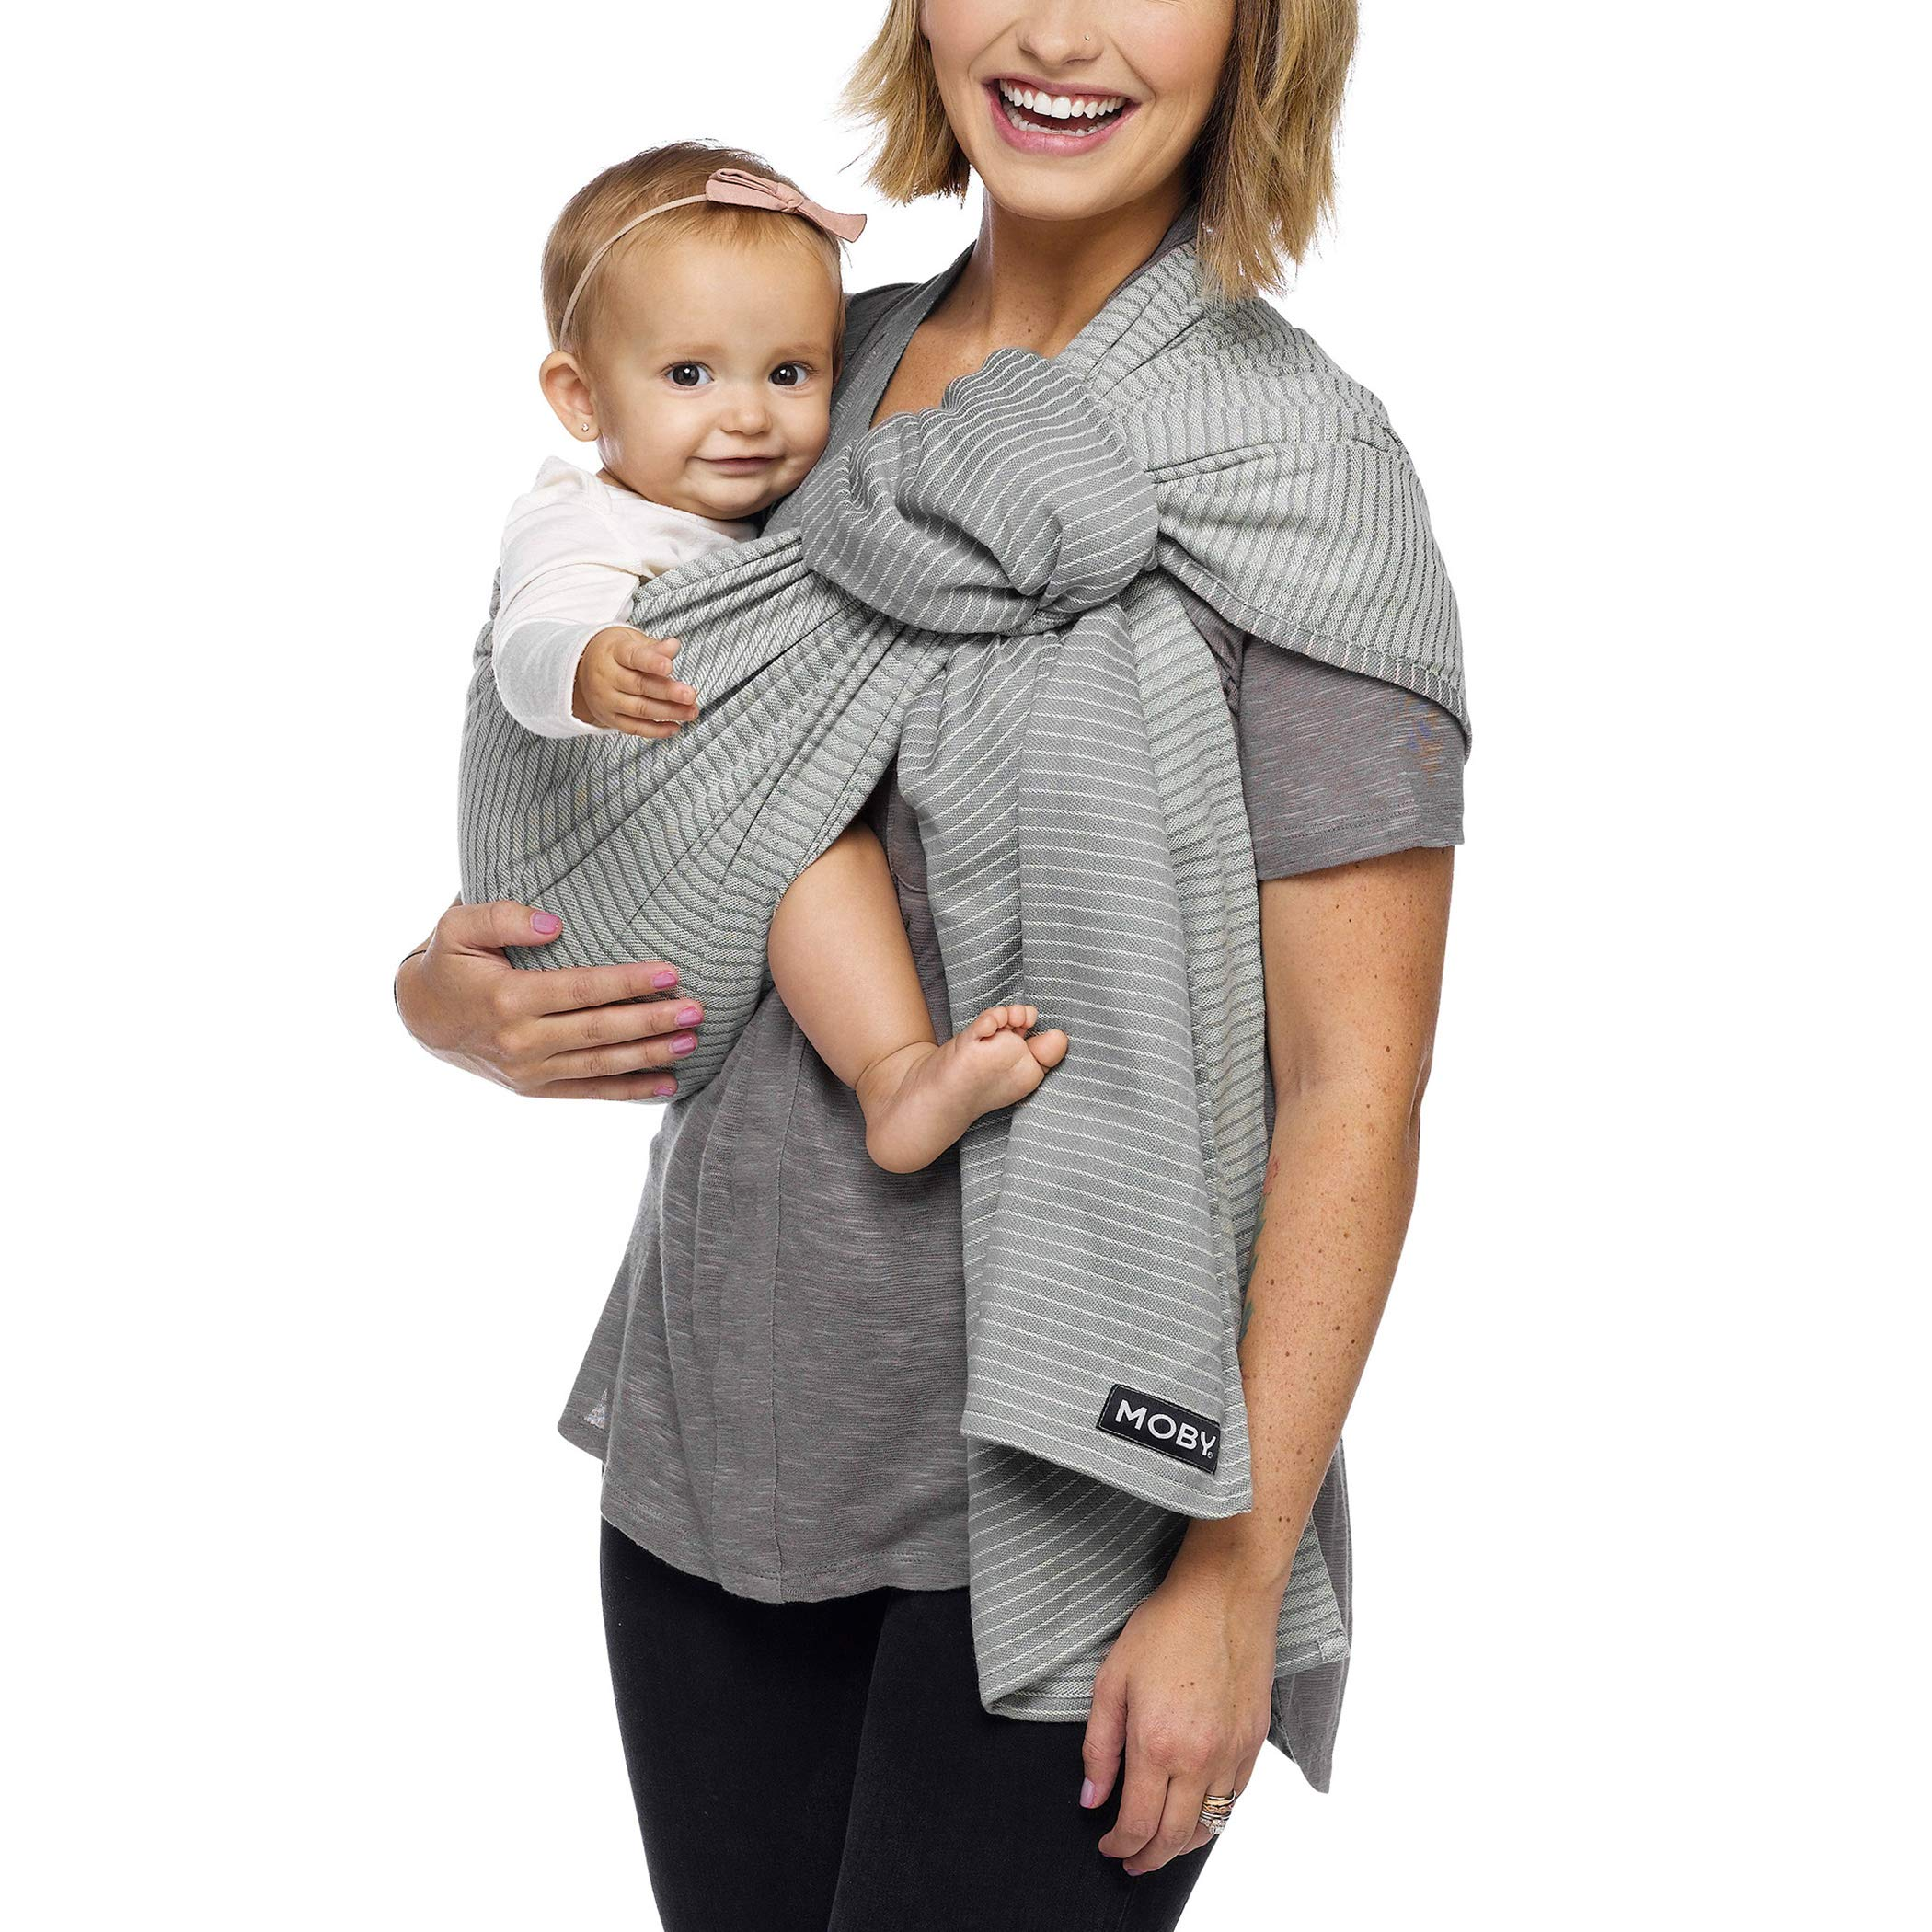 c43decab3f1 Moby Ring Sling Baby Carrier (Silver Streak) - Ring Sling Carrier For  Babywearing -Baby Sling For Baby Wearing